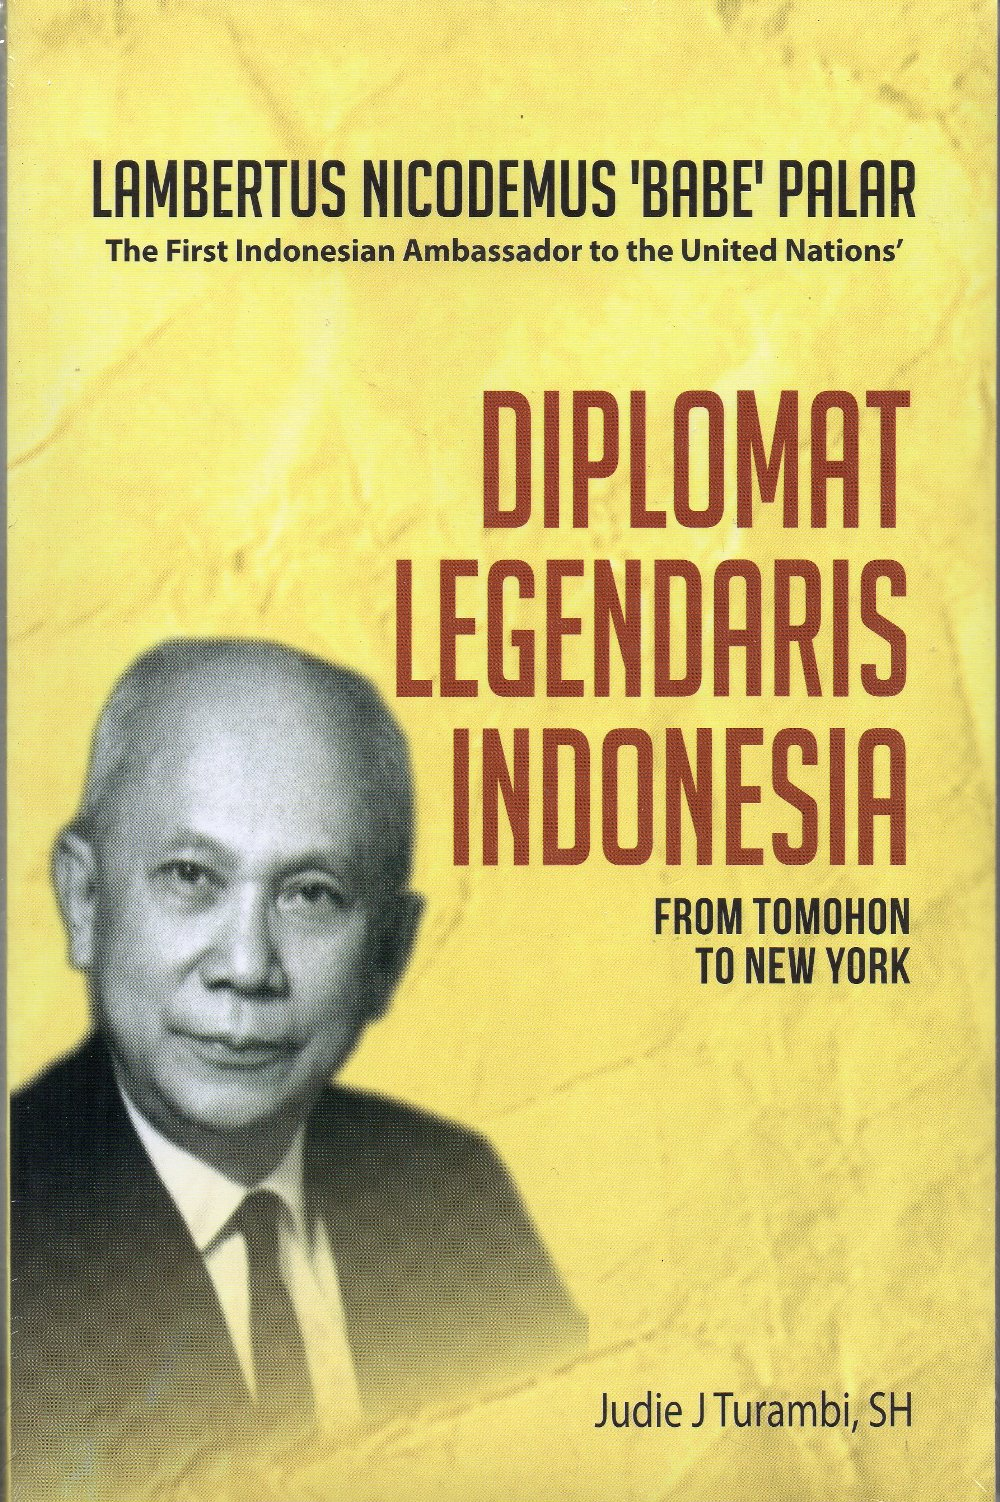 Diplomat Legendaris Indonesia